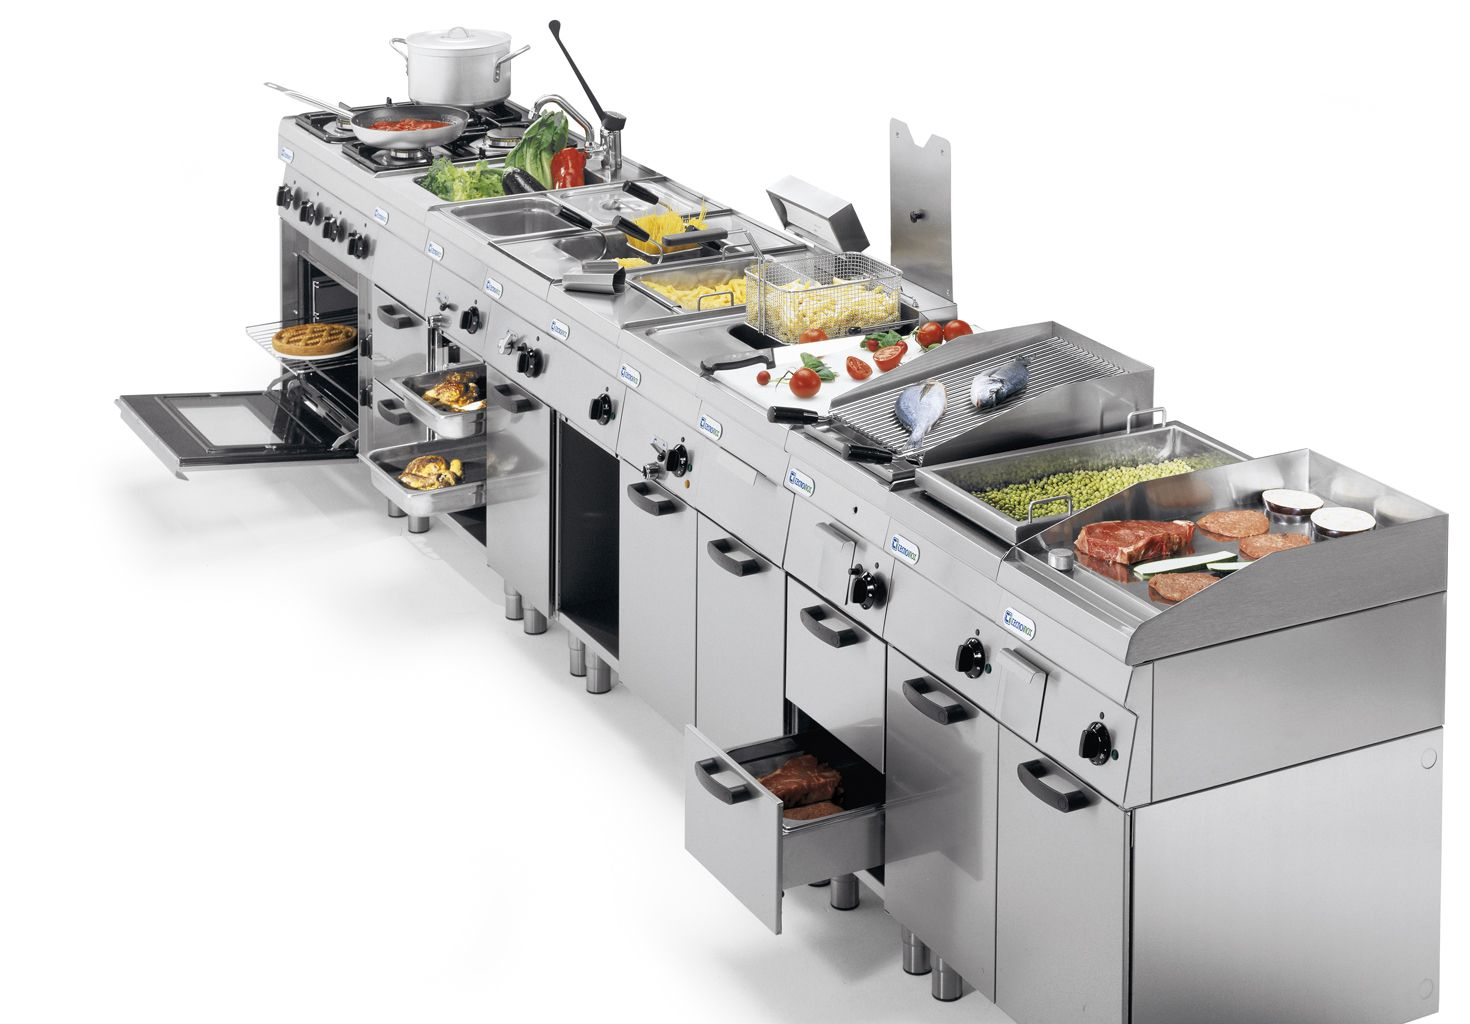 commercial kitchen design Guest Post Considerations for Purchasing Restaurant Kitchen Equipment